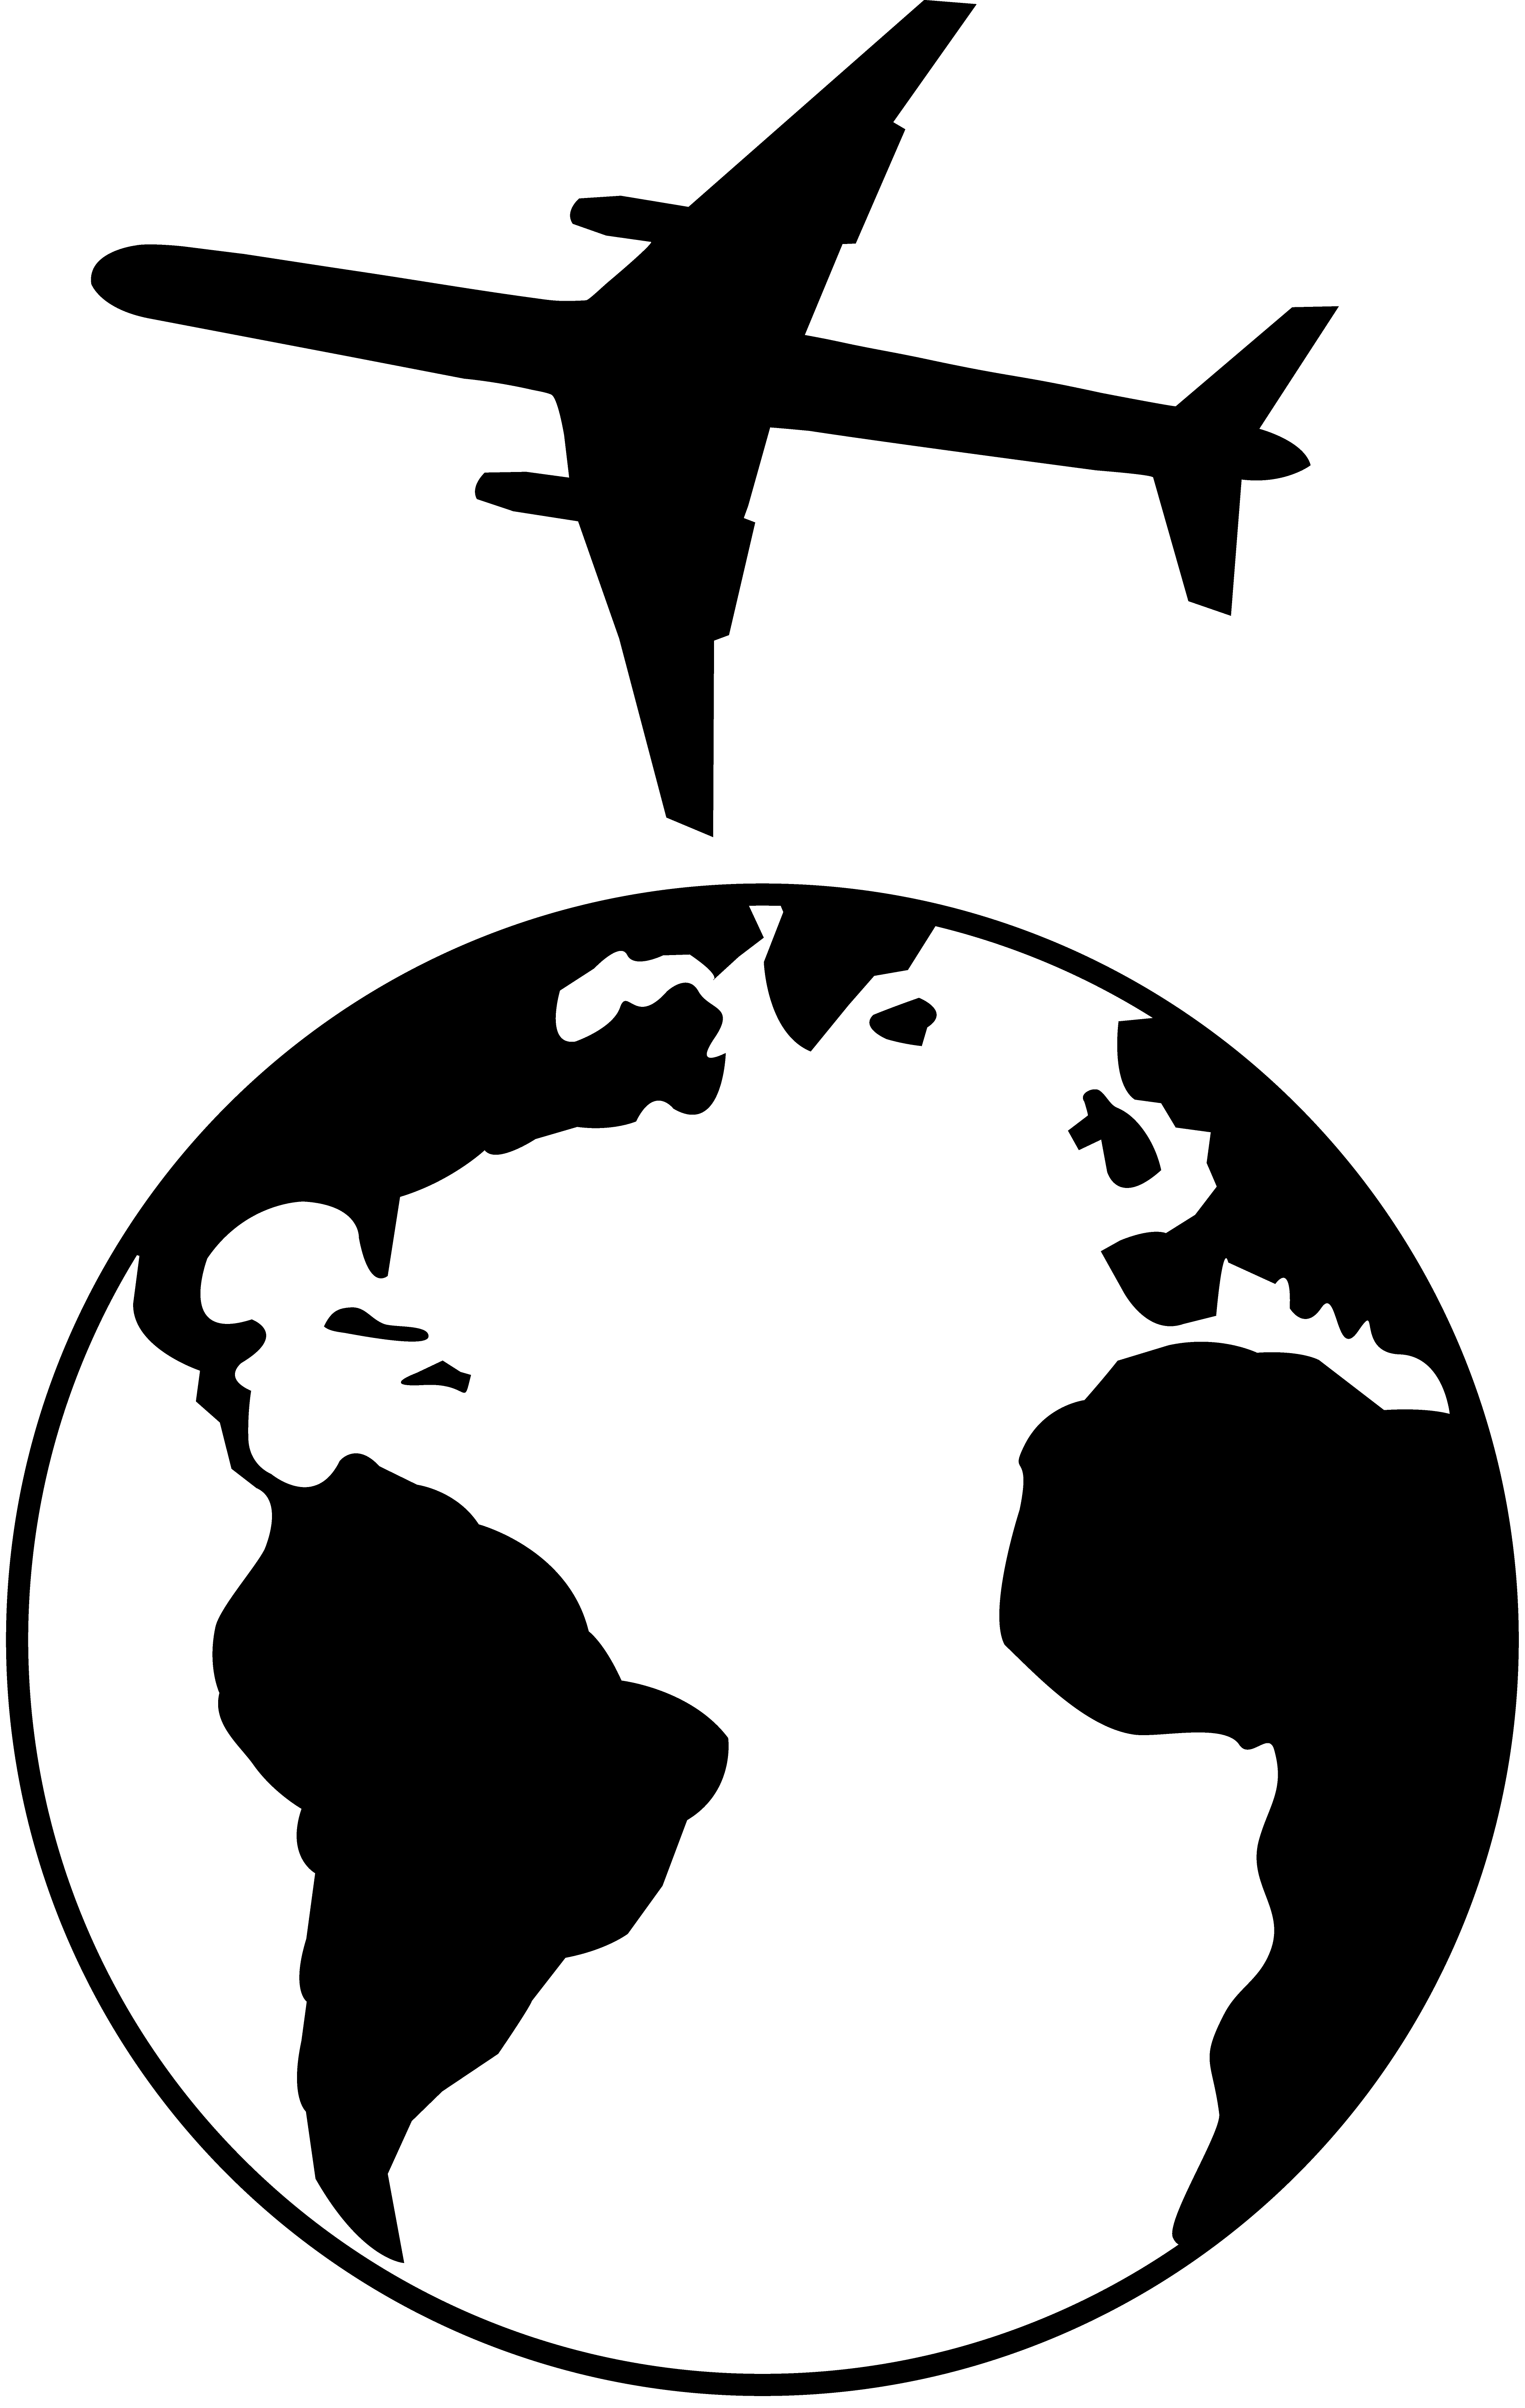 29 earth silhouette png . Free cliparts that you can download to you ...